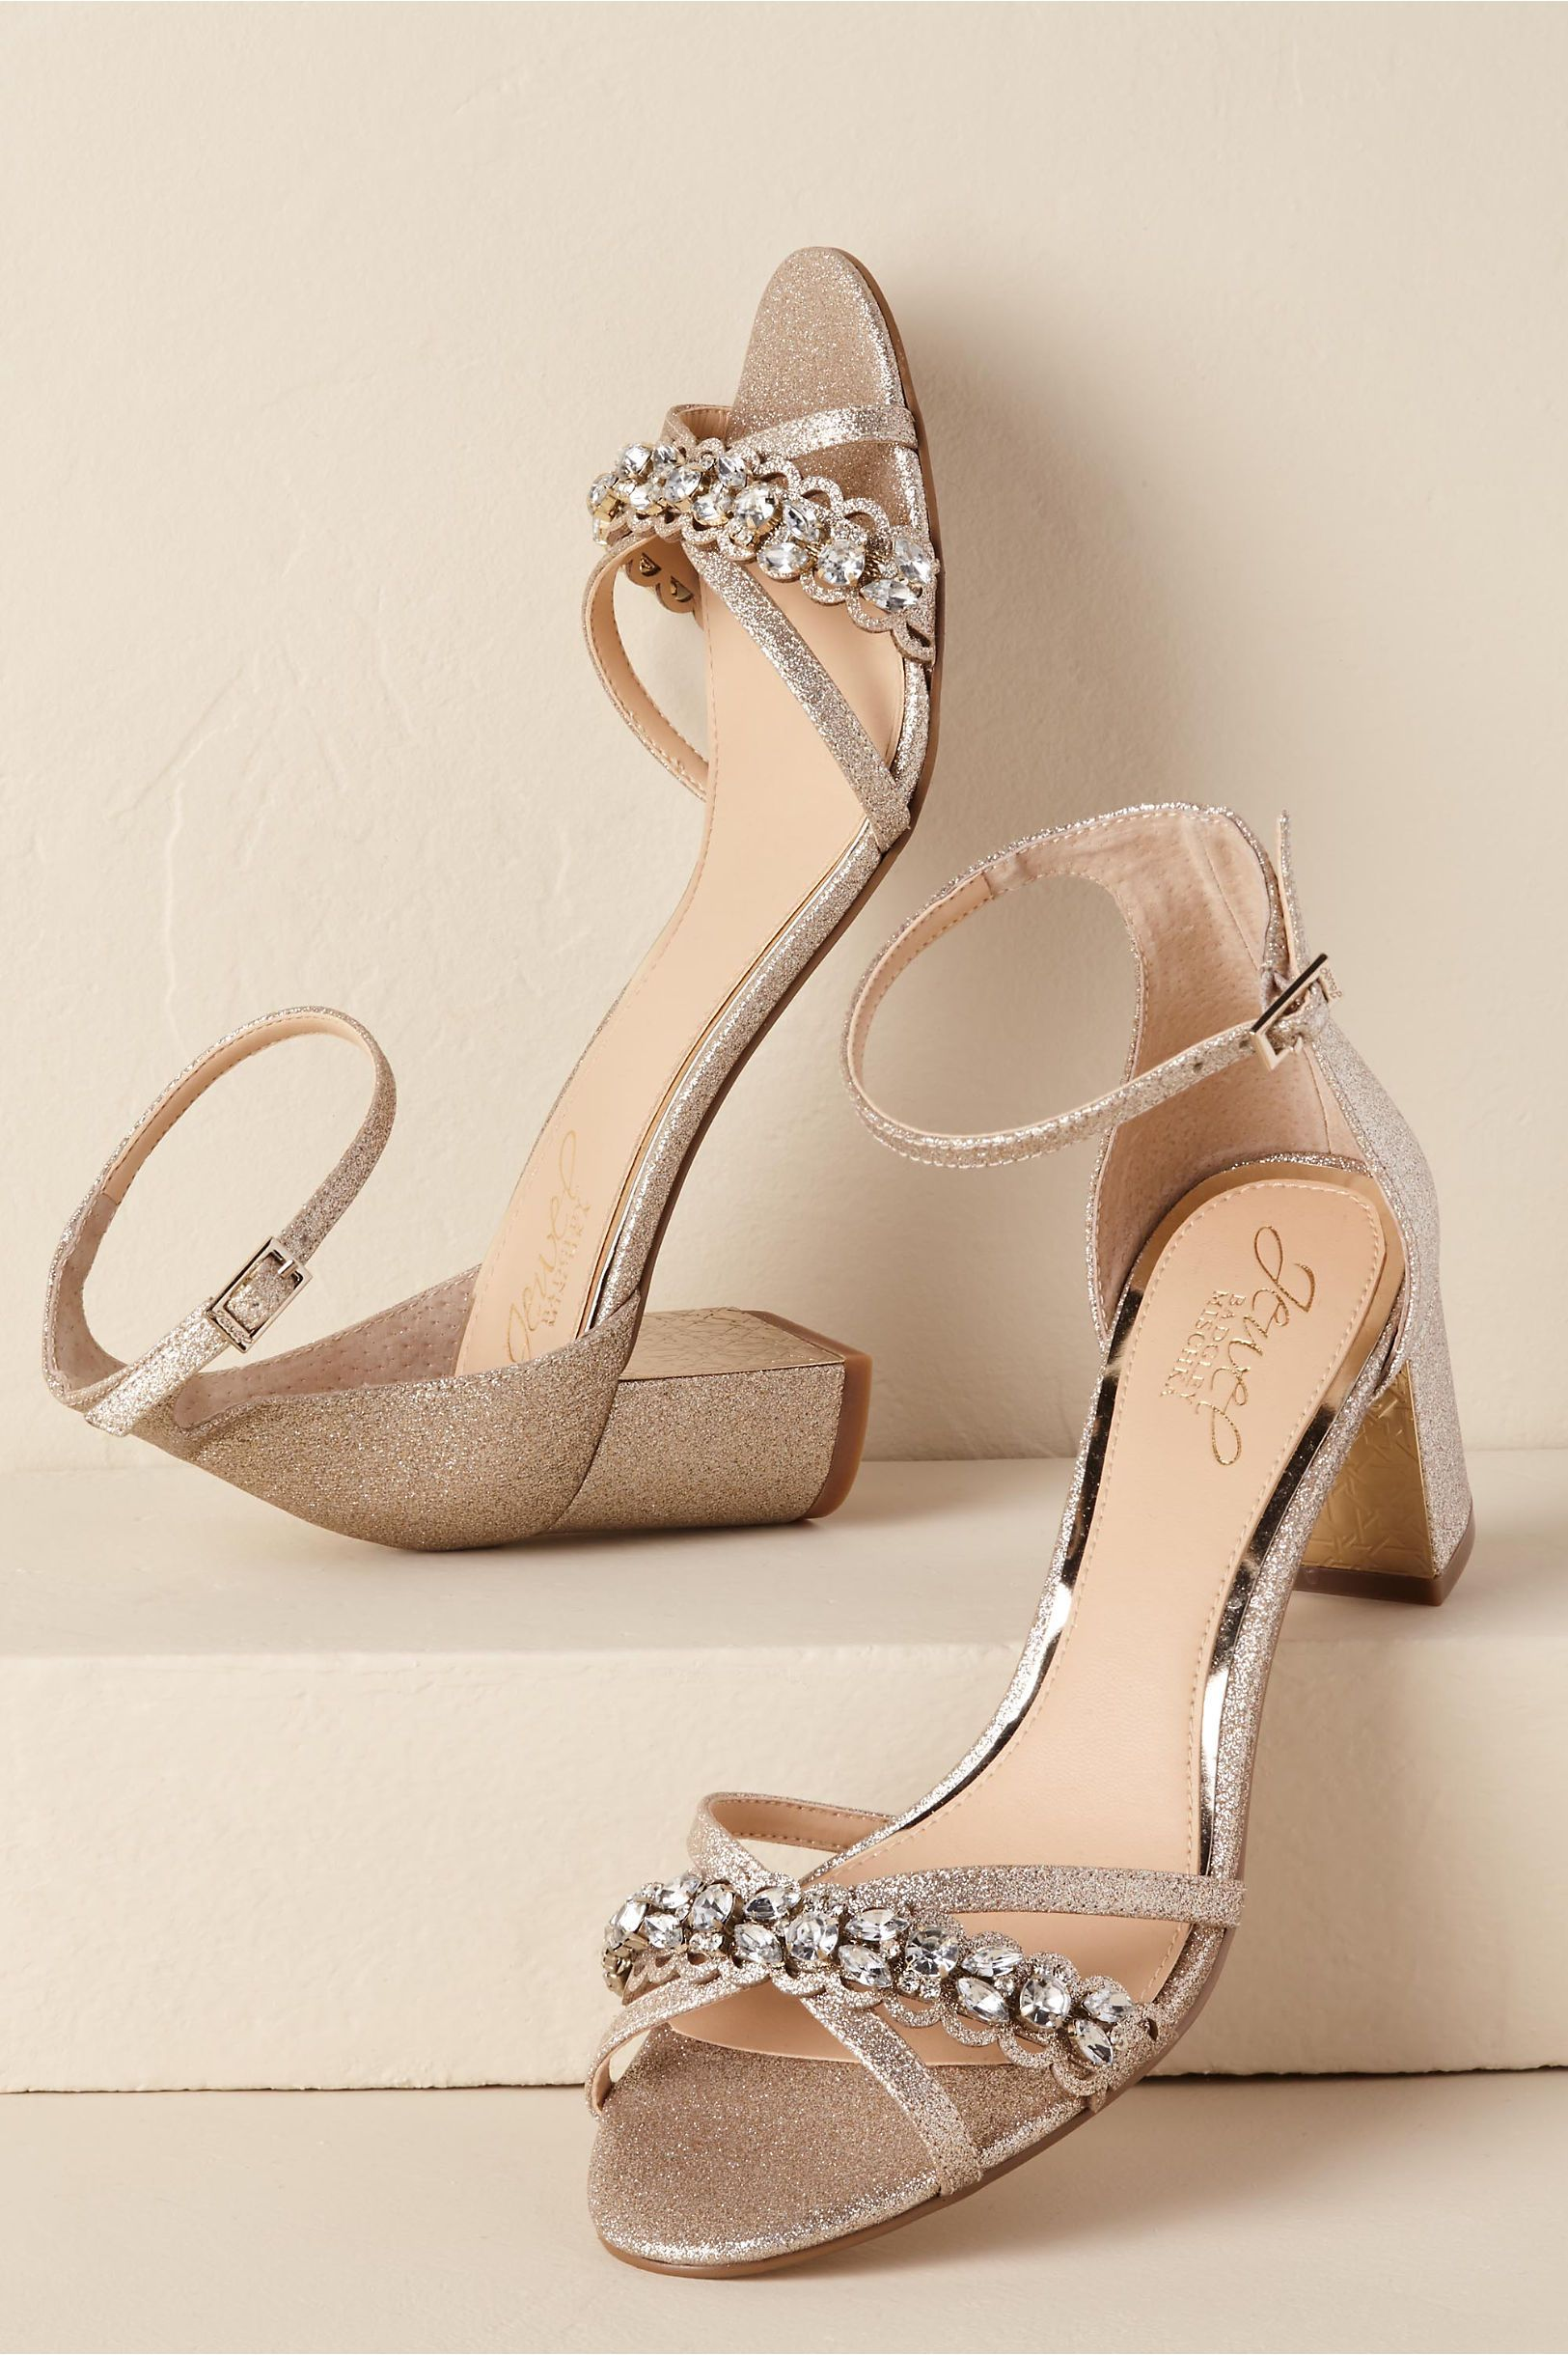 bd5a2f79b Jewel by Badgley Mischka Giona Block Heels Silver in Shoes   Accessories